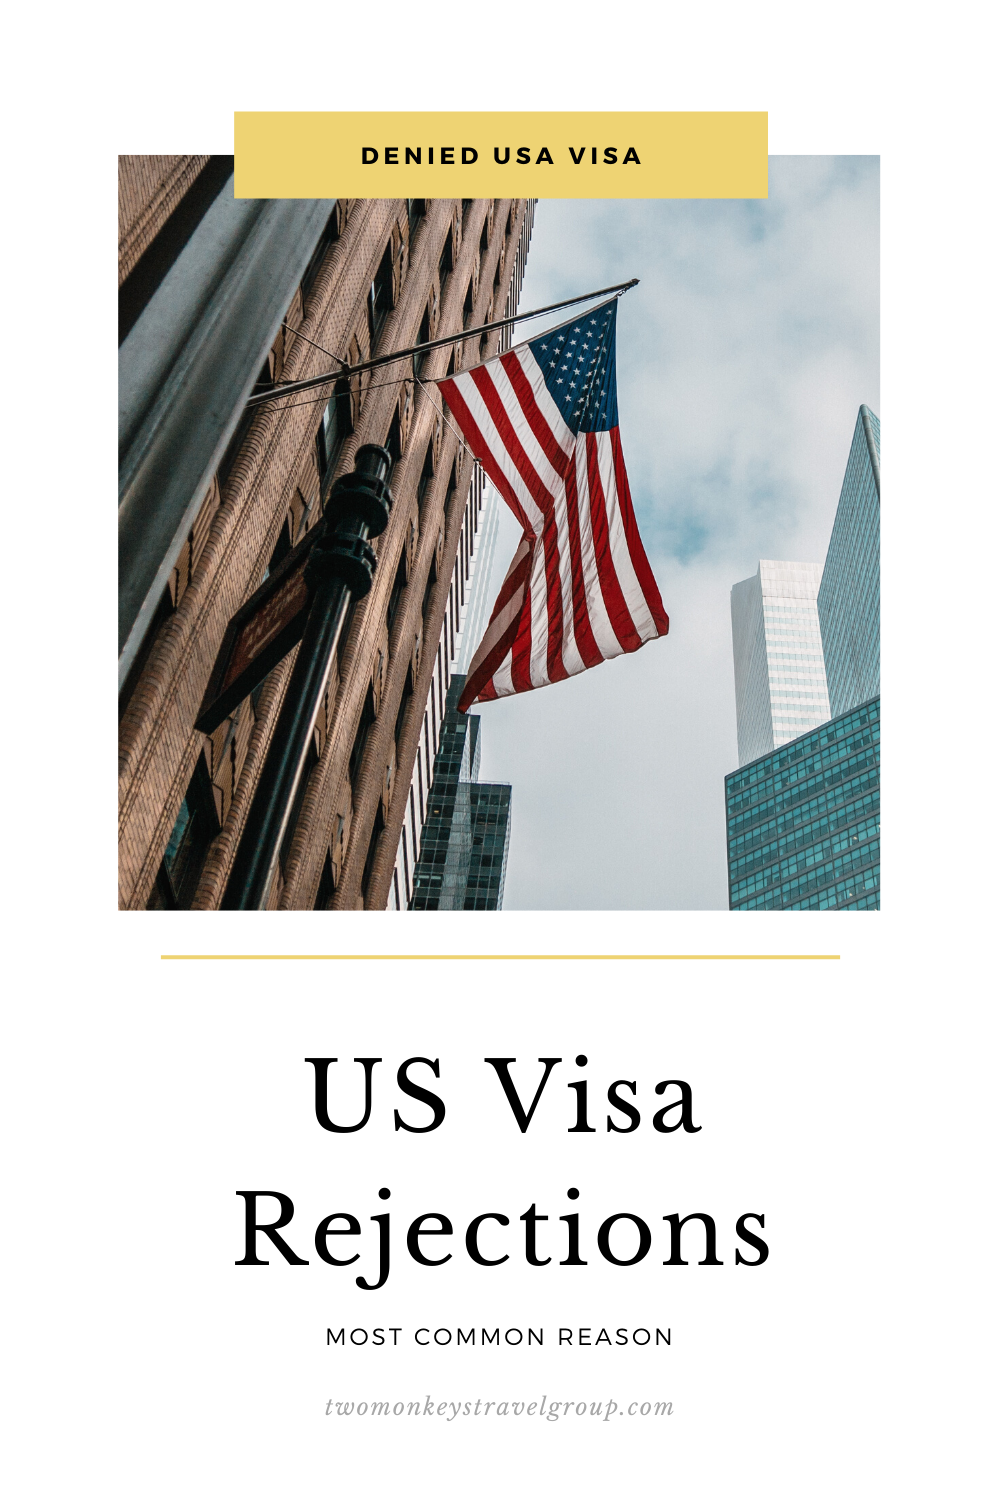 DENIED USA VISA - 7 Most Common Reasons for US Visa Rejections